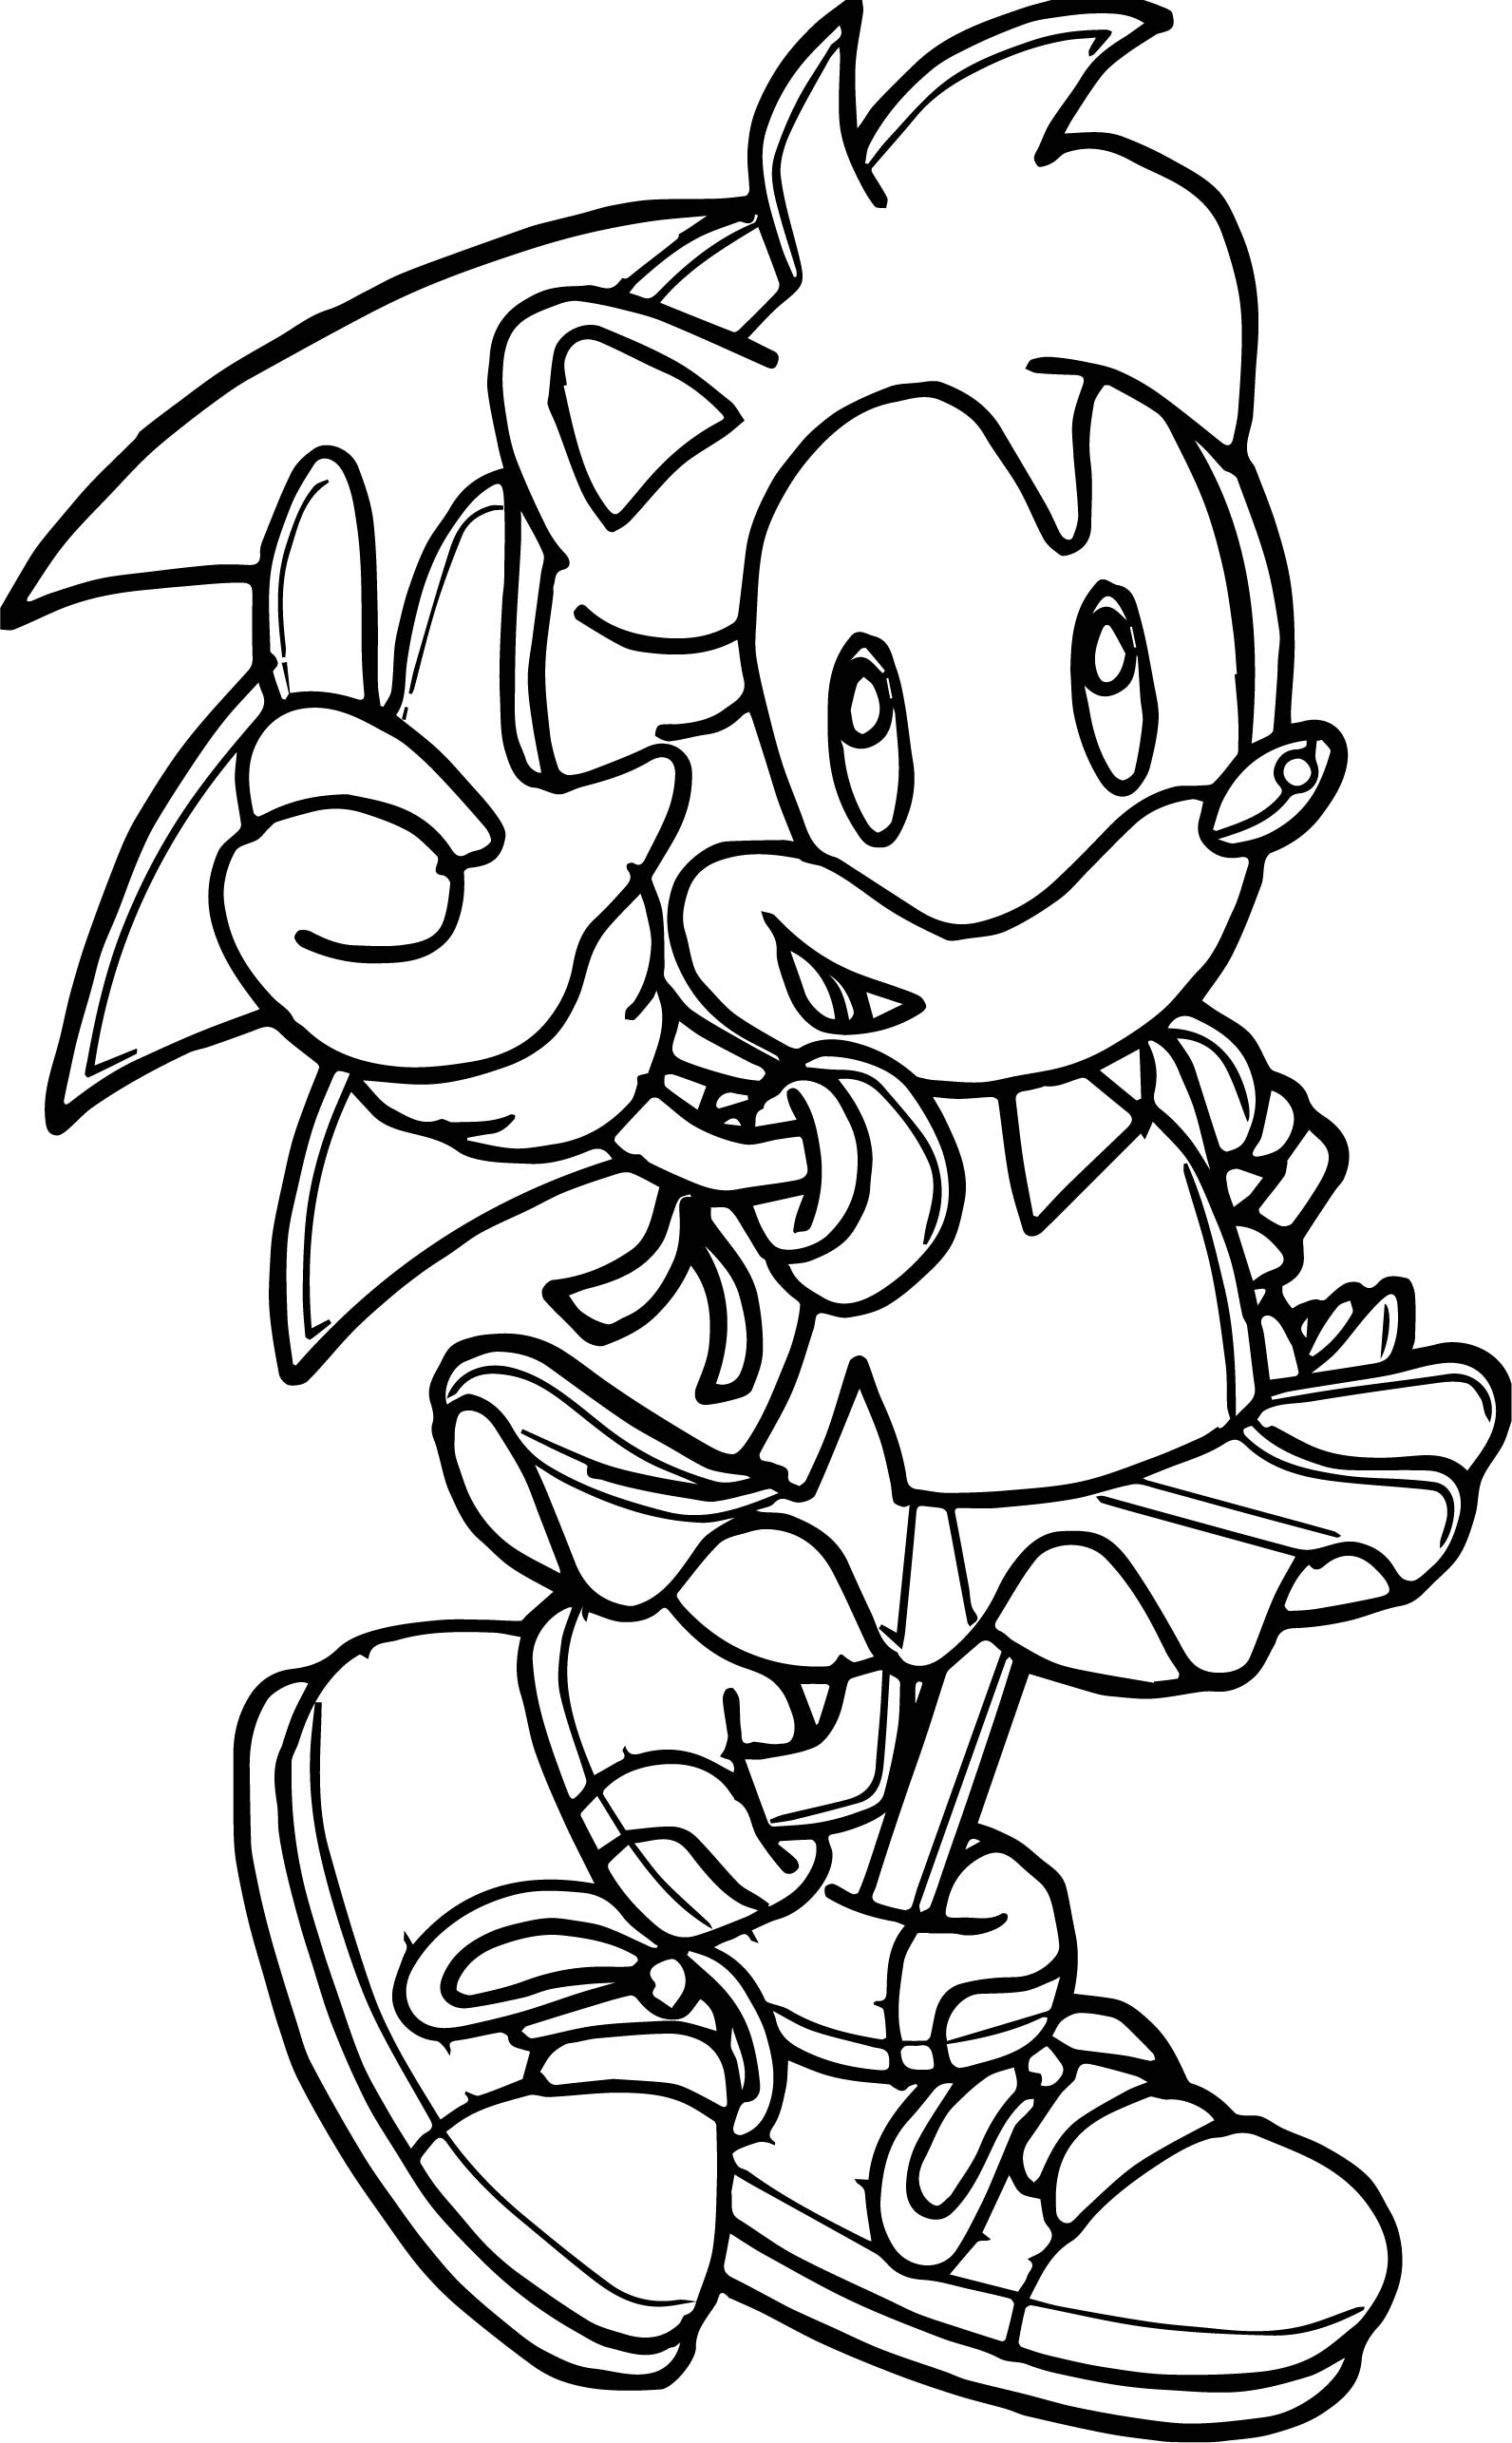 Three Amy Rose Coloring Page